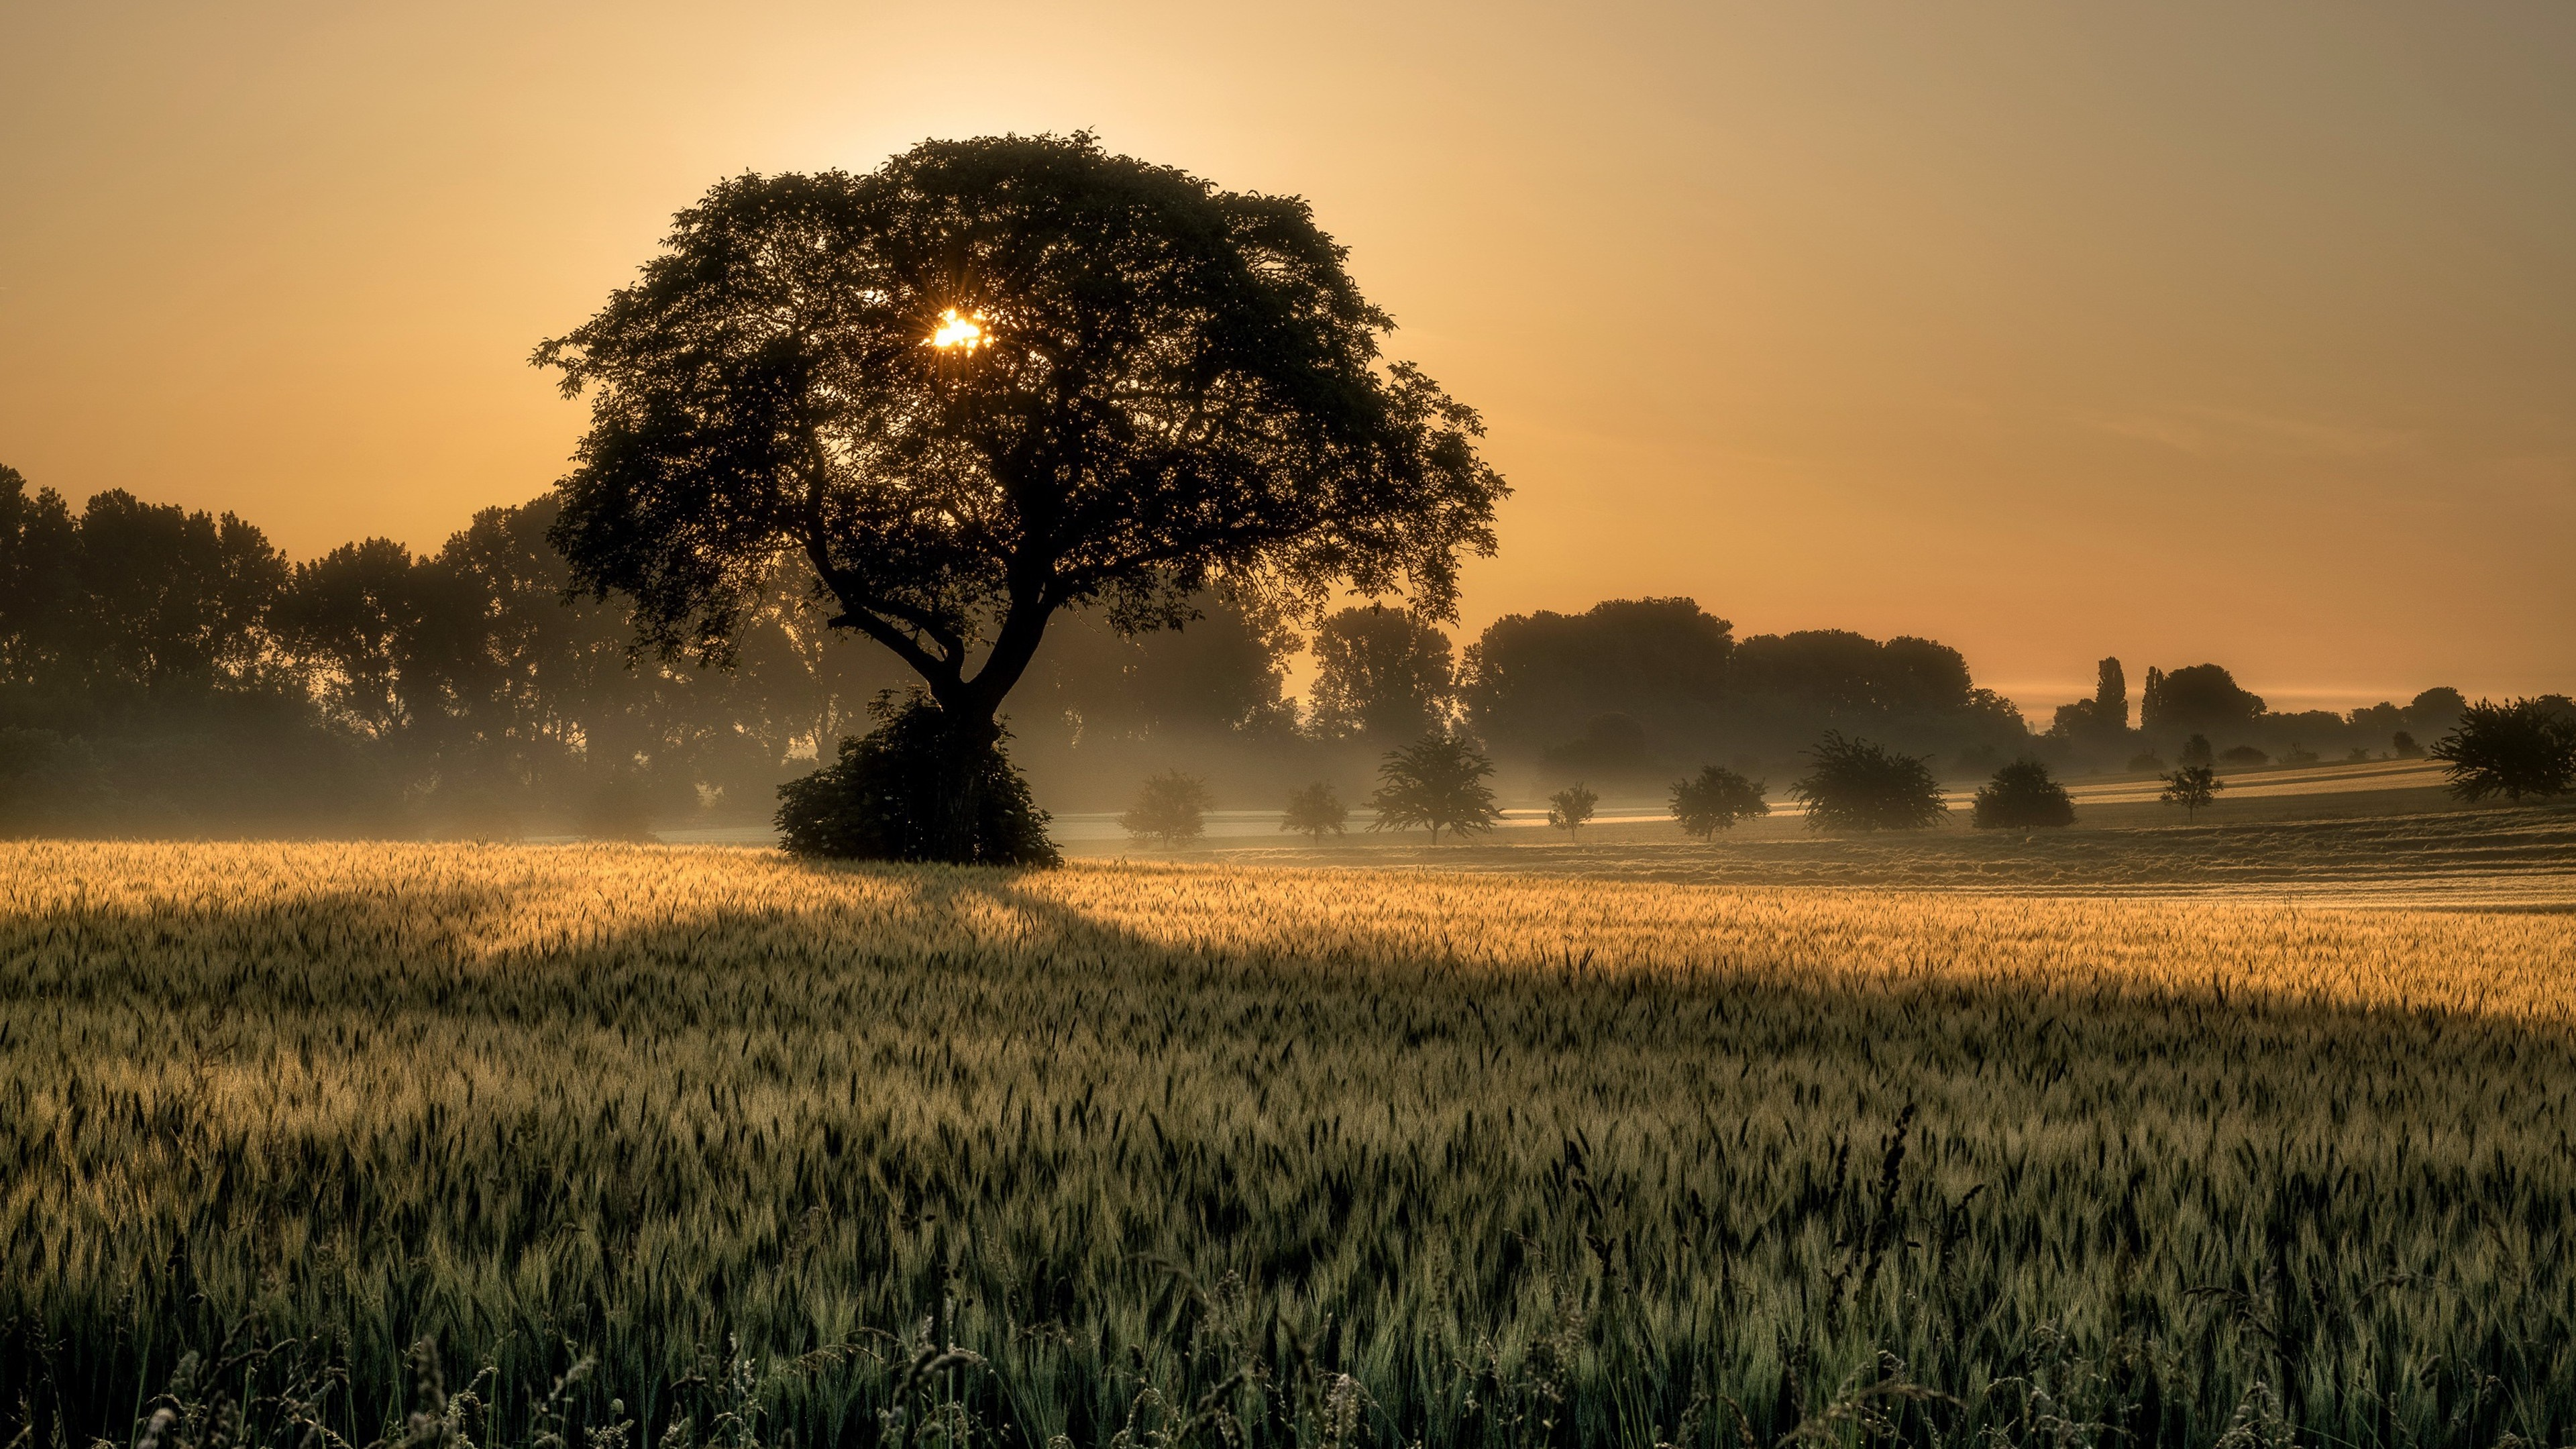 Solitary tree at sunset wallpaper